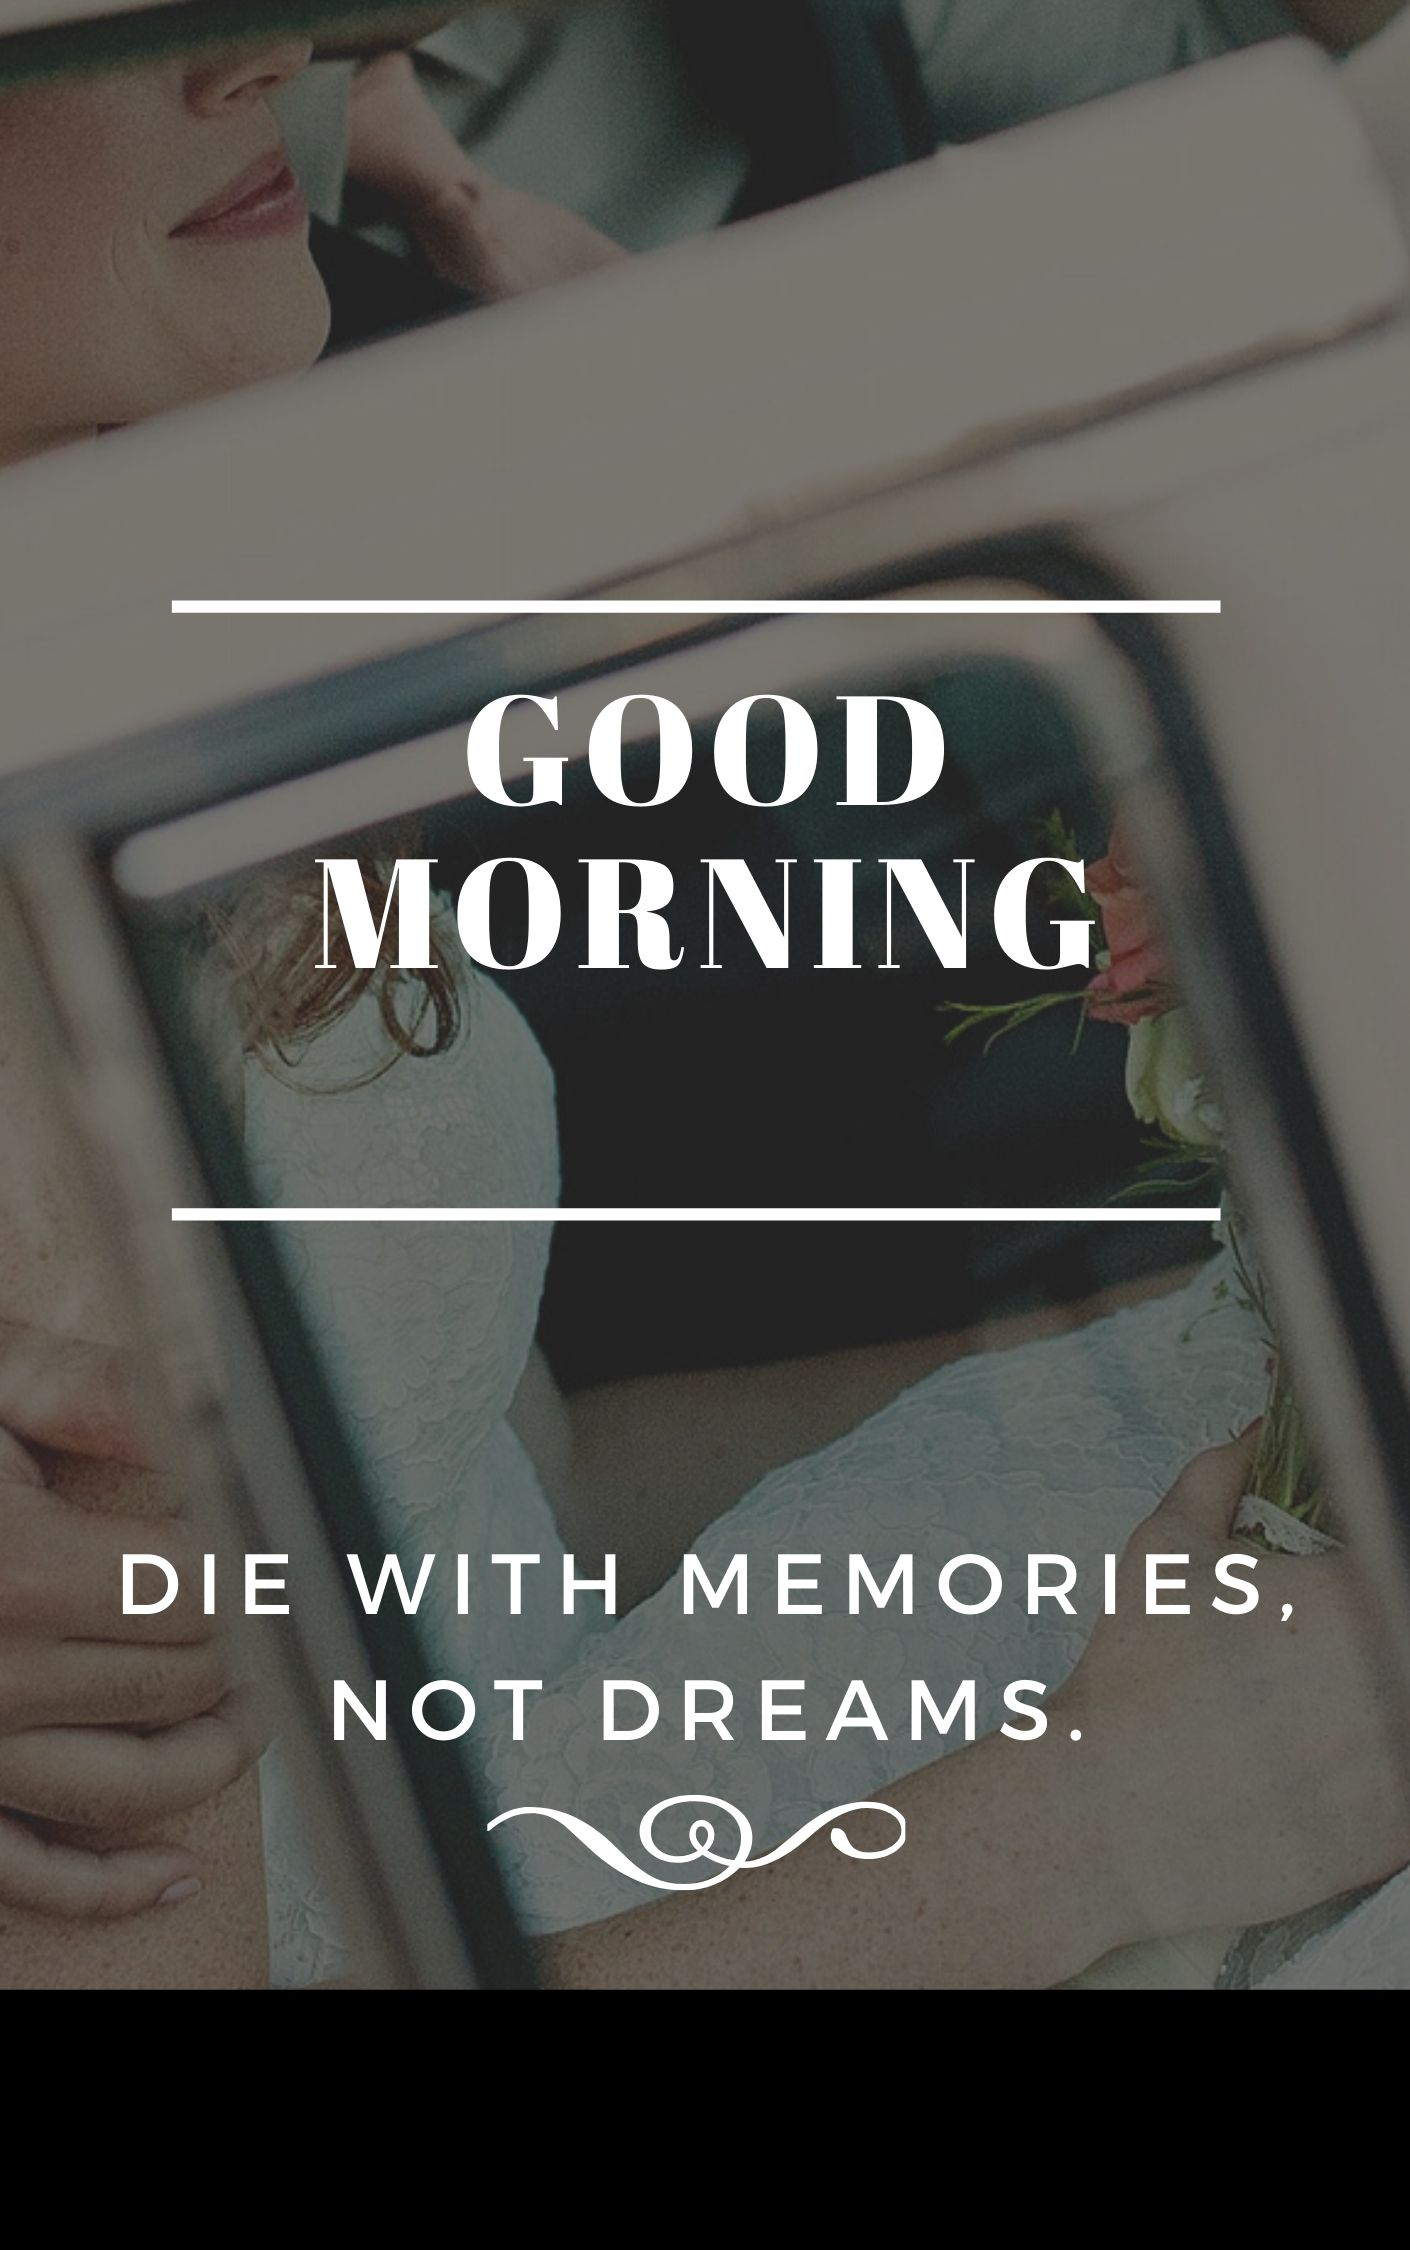 Die with memories Not dreams. Good Morning Quote full HD free download.